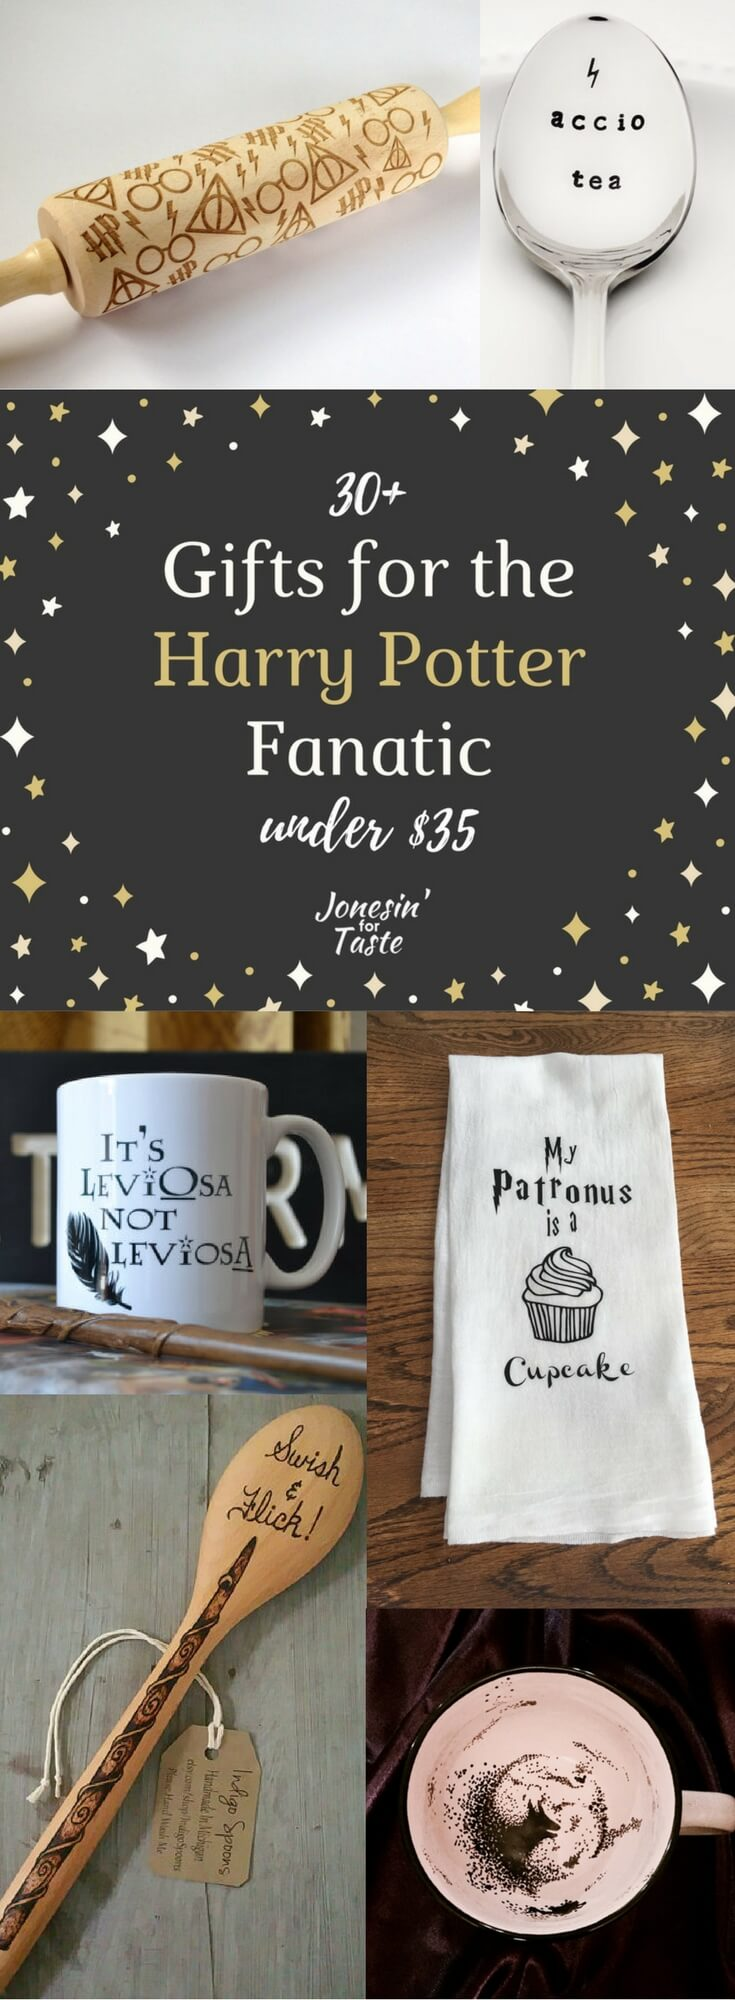 These amazing gifts all under $30 will make your favorite Harry Potter fan geek out when they get them.